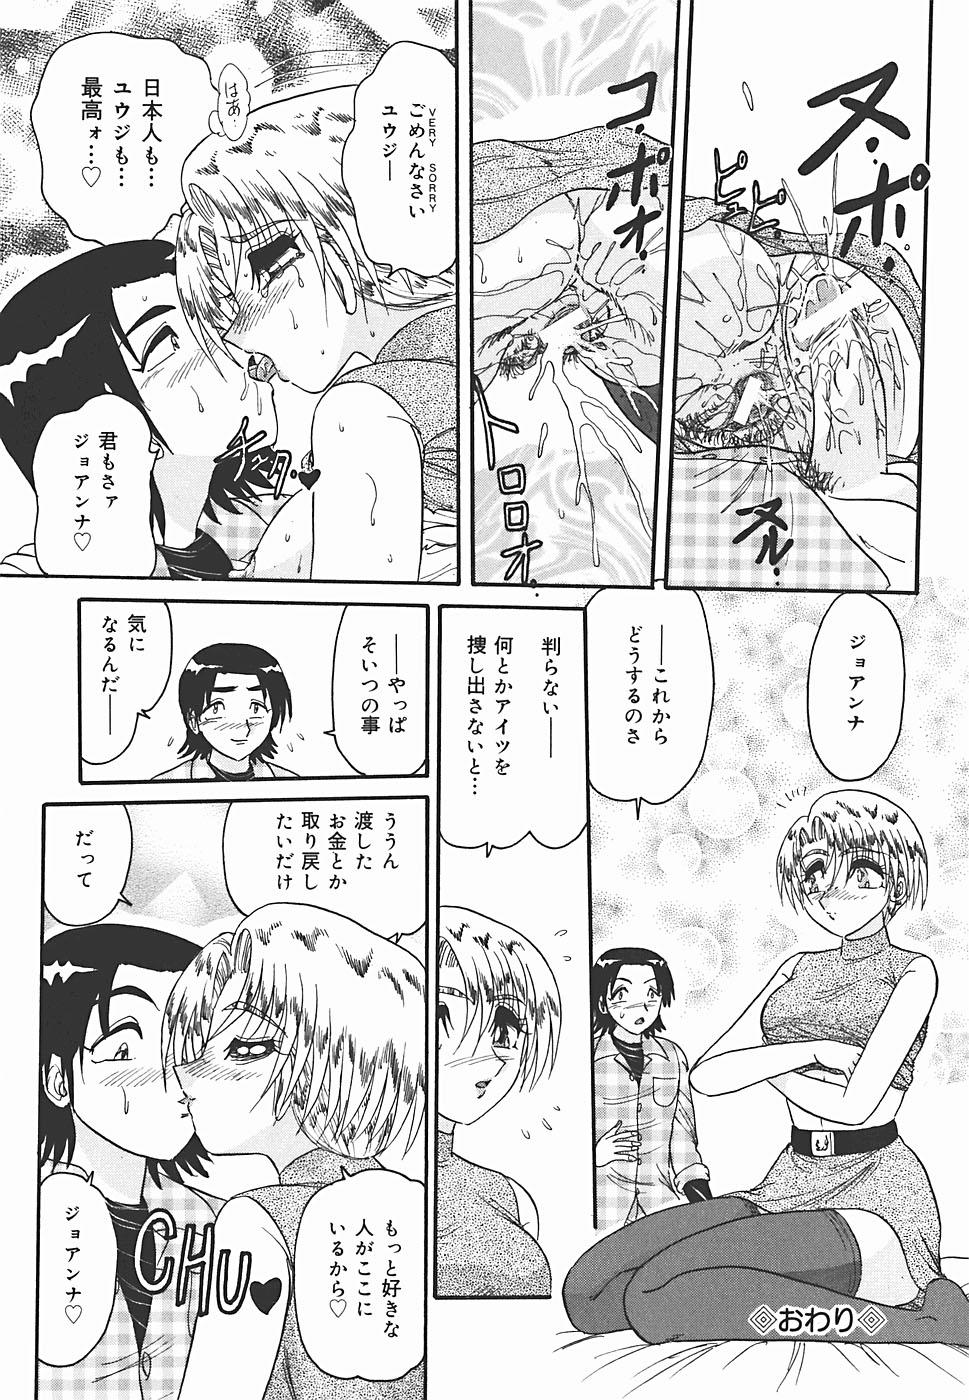 Immoral 163